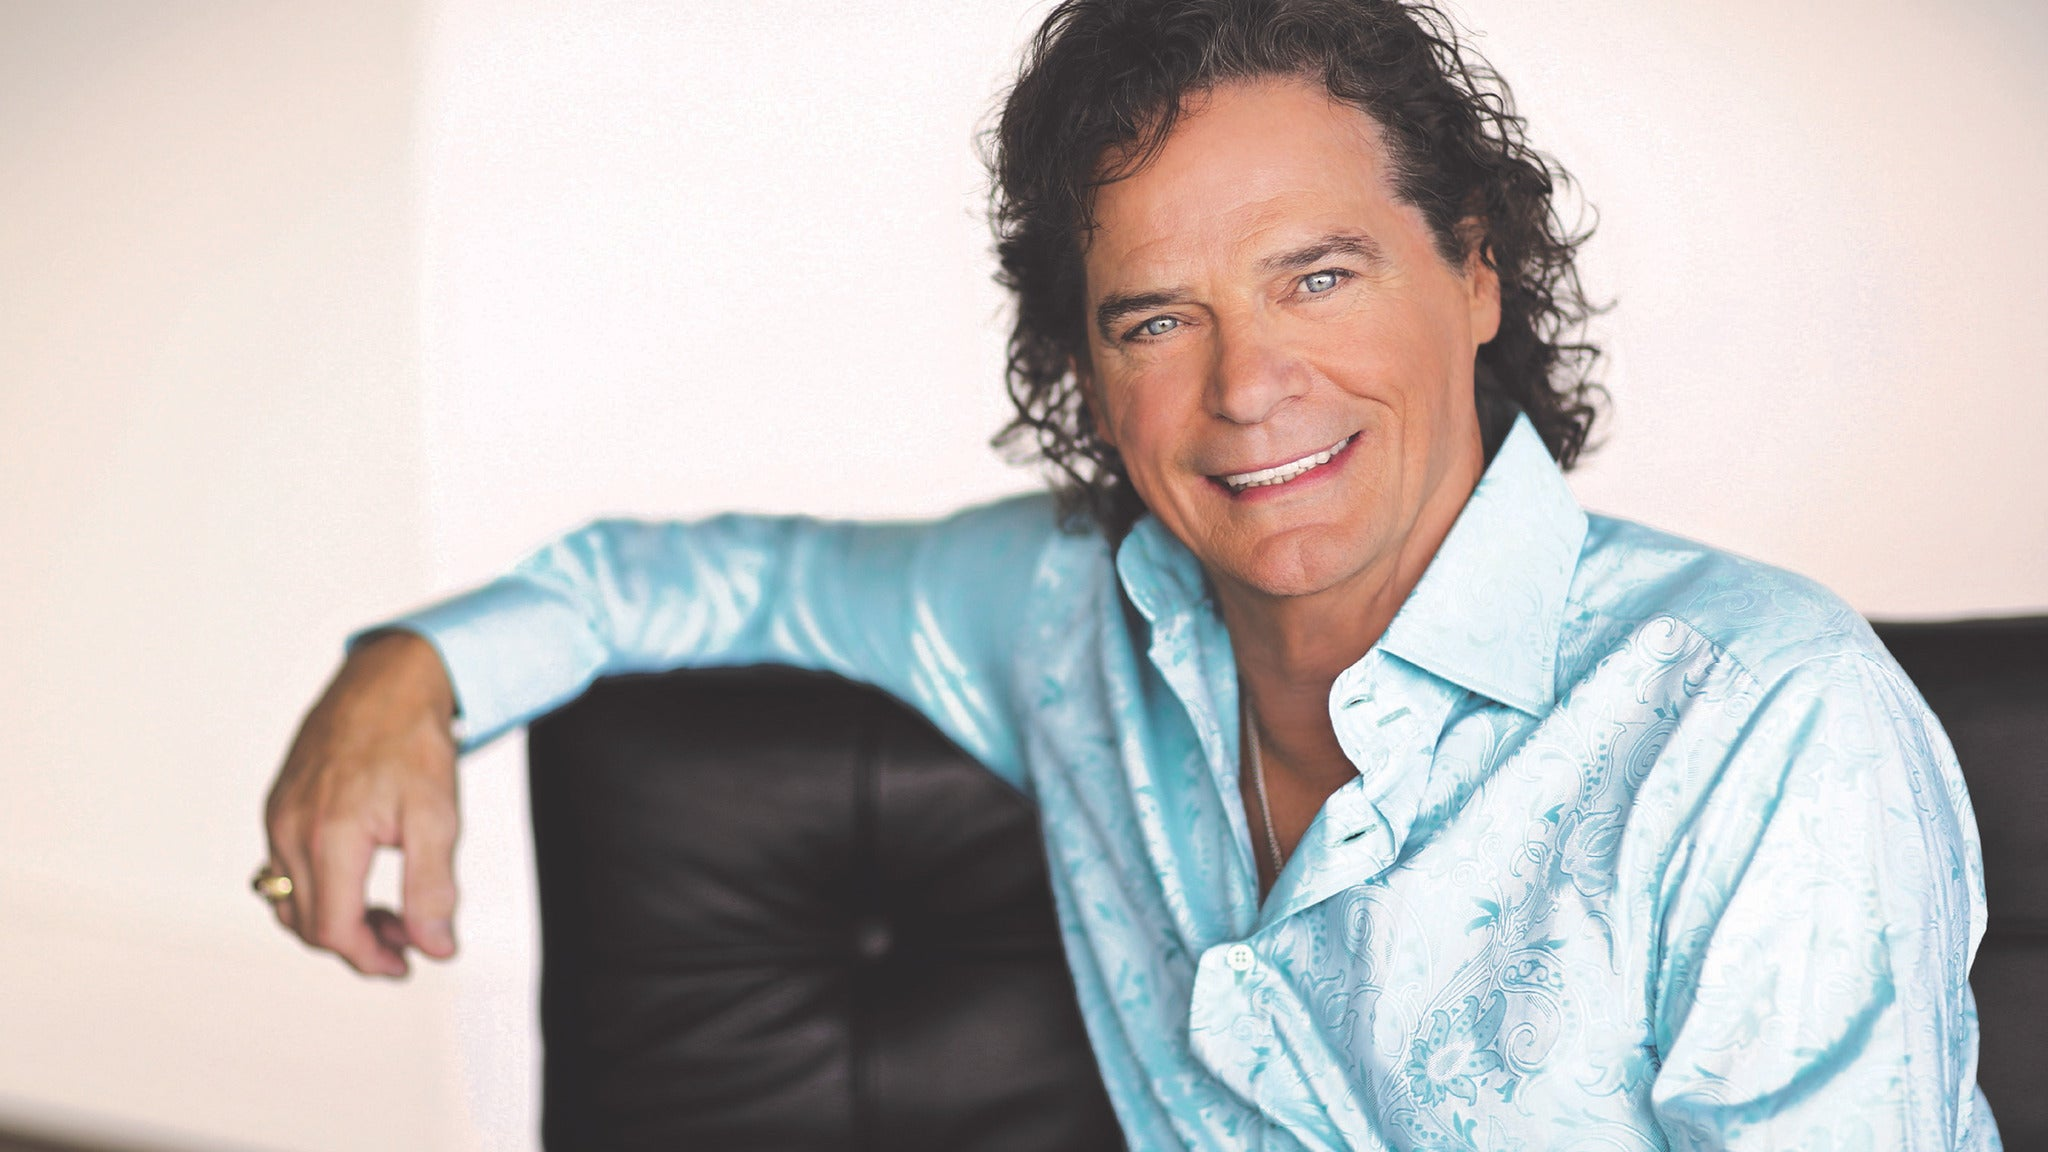 BJ Thomas at Palace Theatre-Greensburg